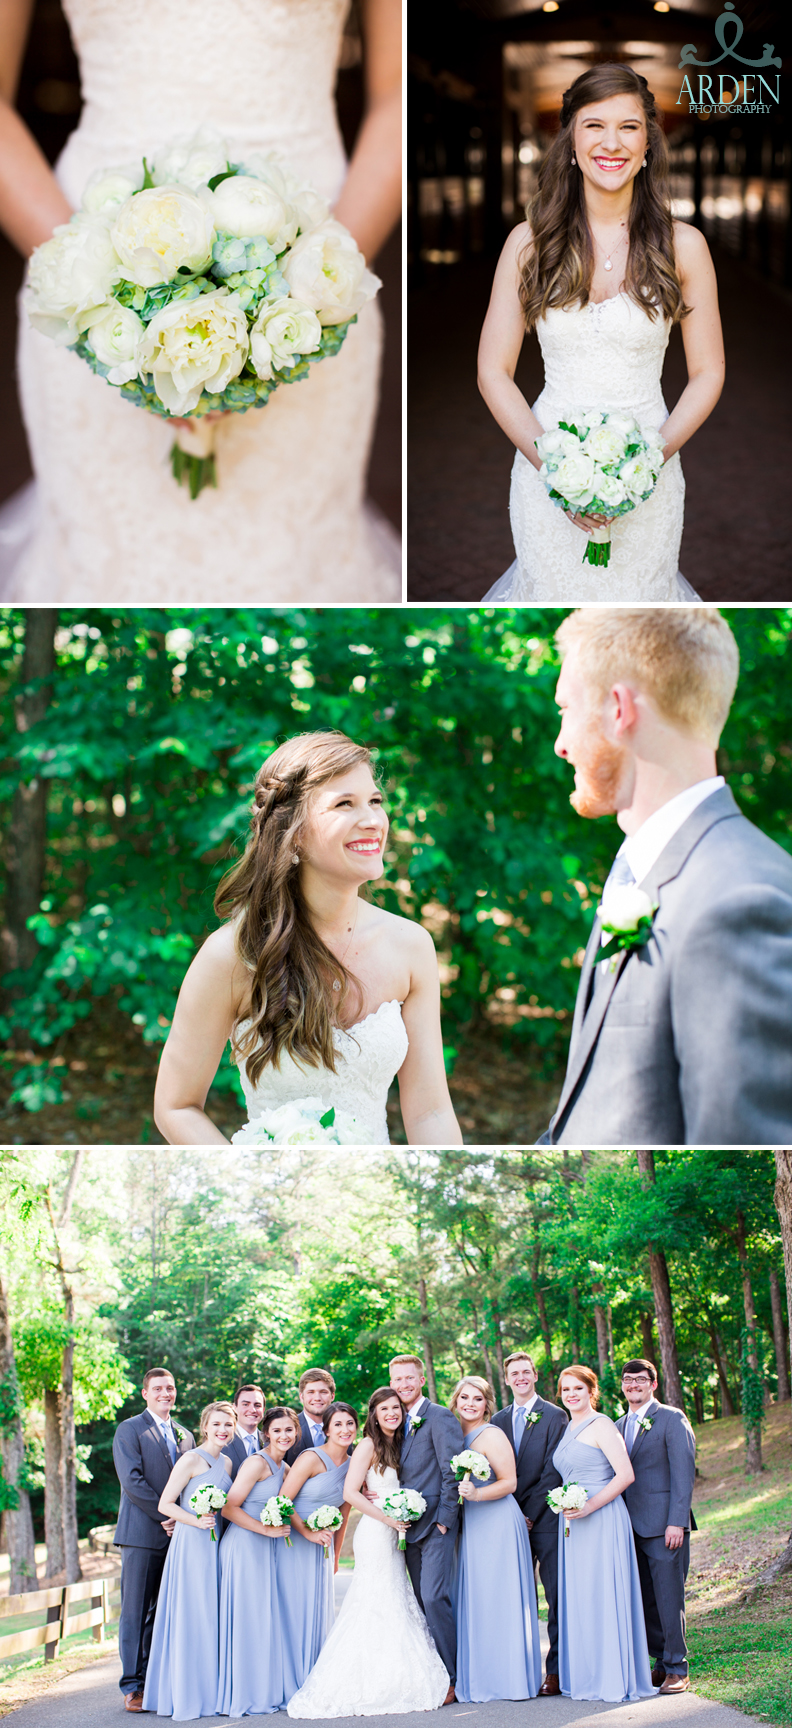 First look requirements: a loving couple, supportive friends, and, of course, a beautiful bouquet.